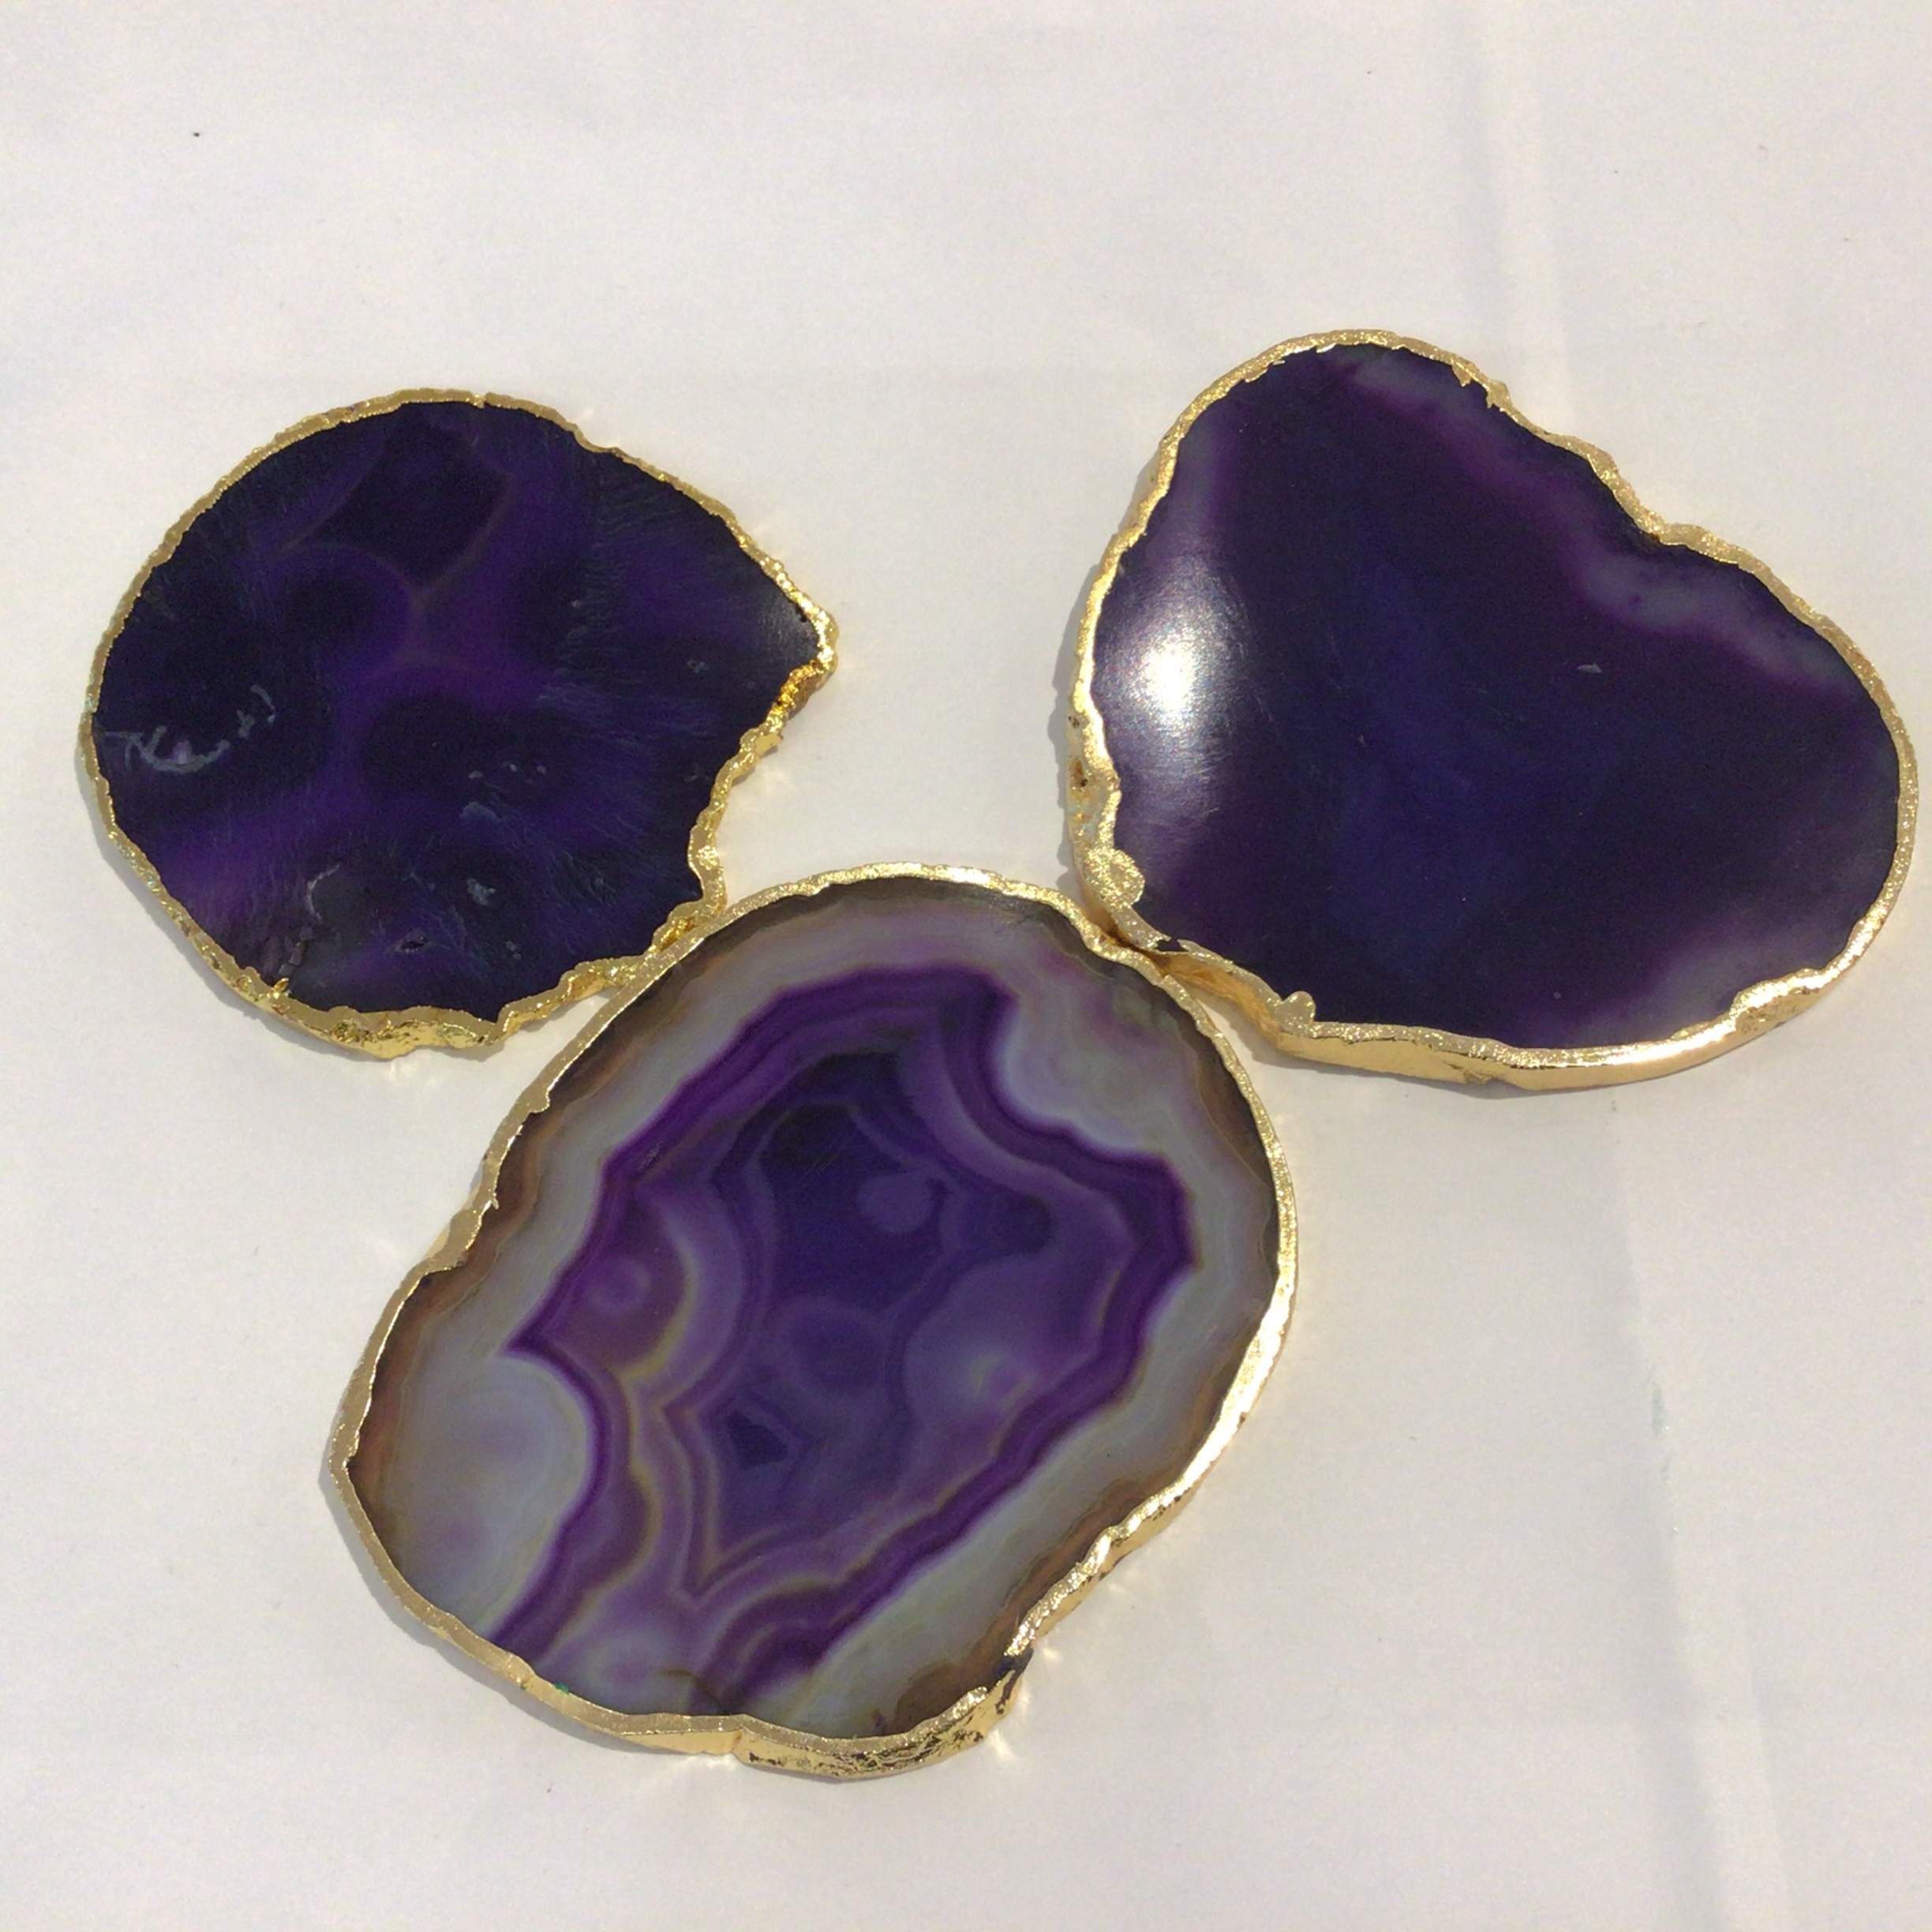 Agate Coaster - Purple